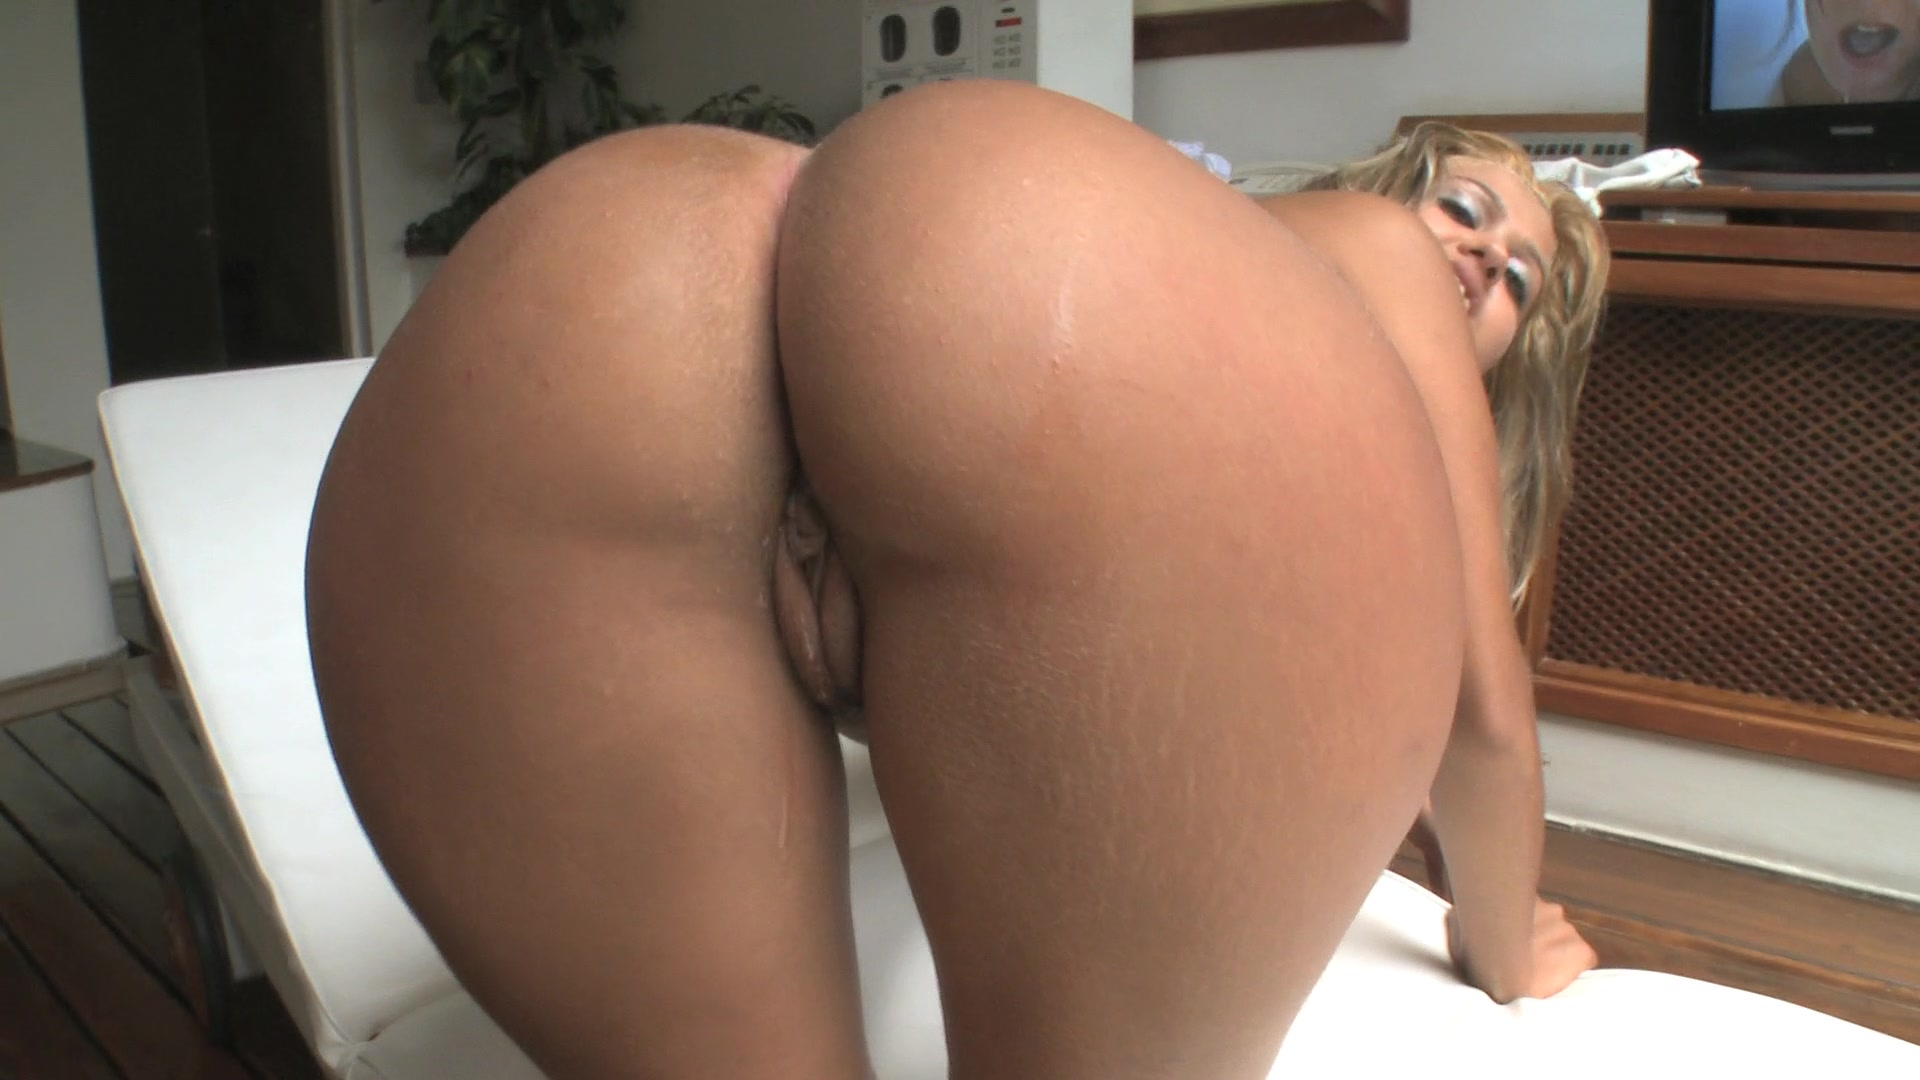 image More ass from brazil anyone